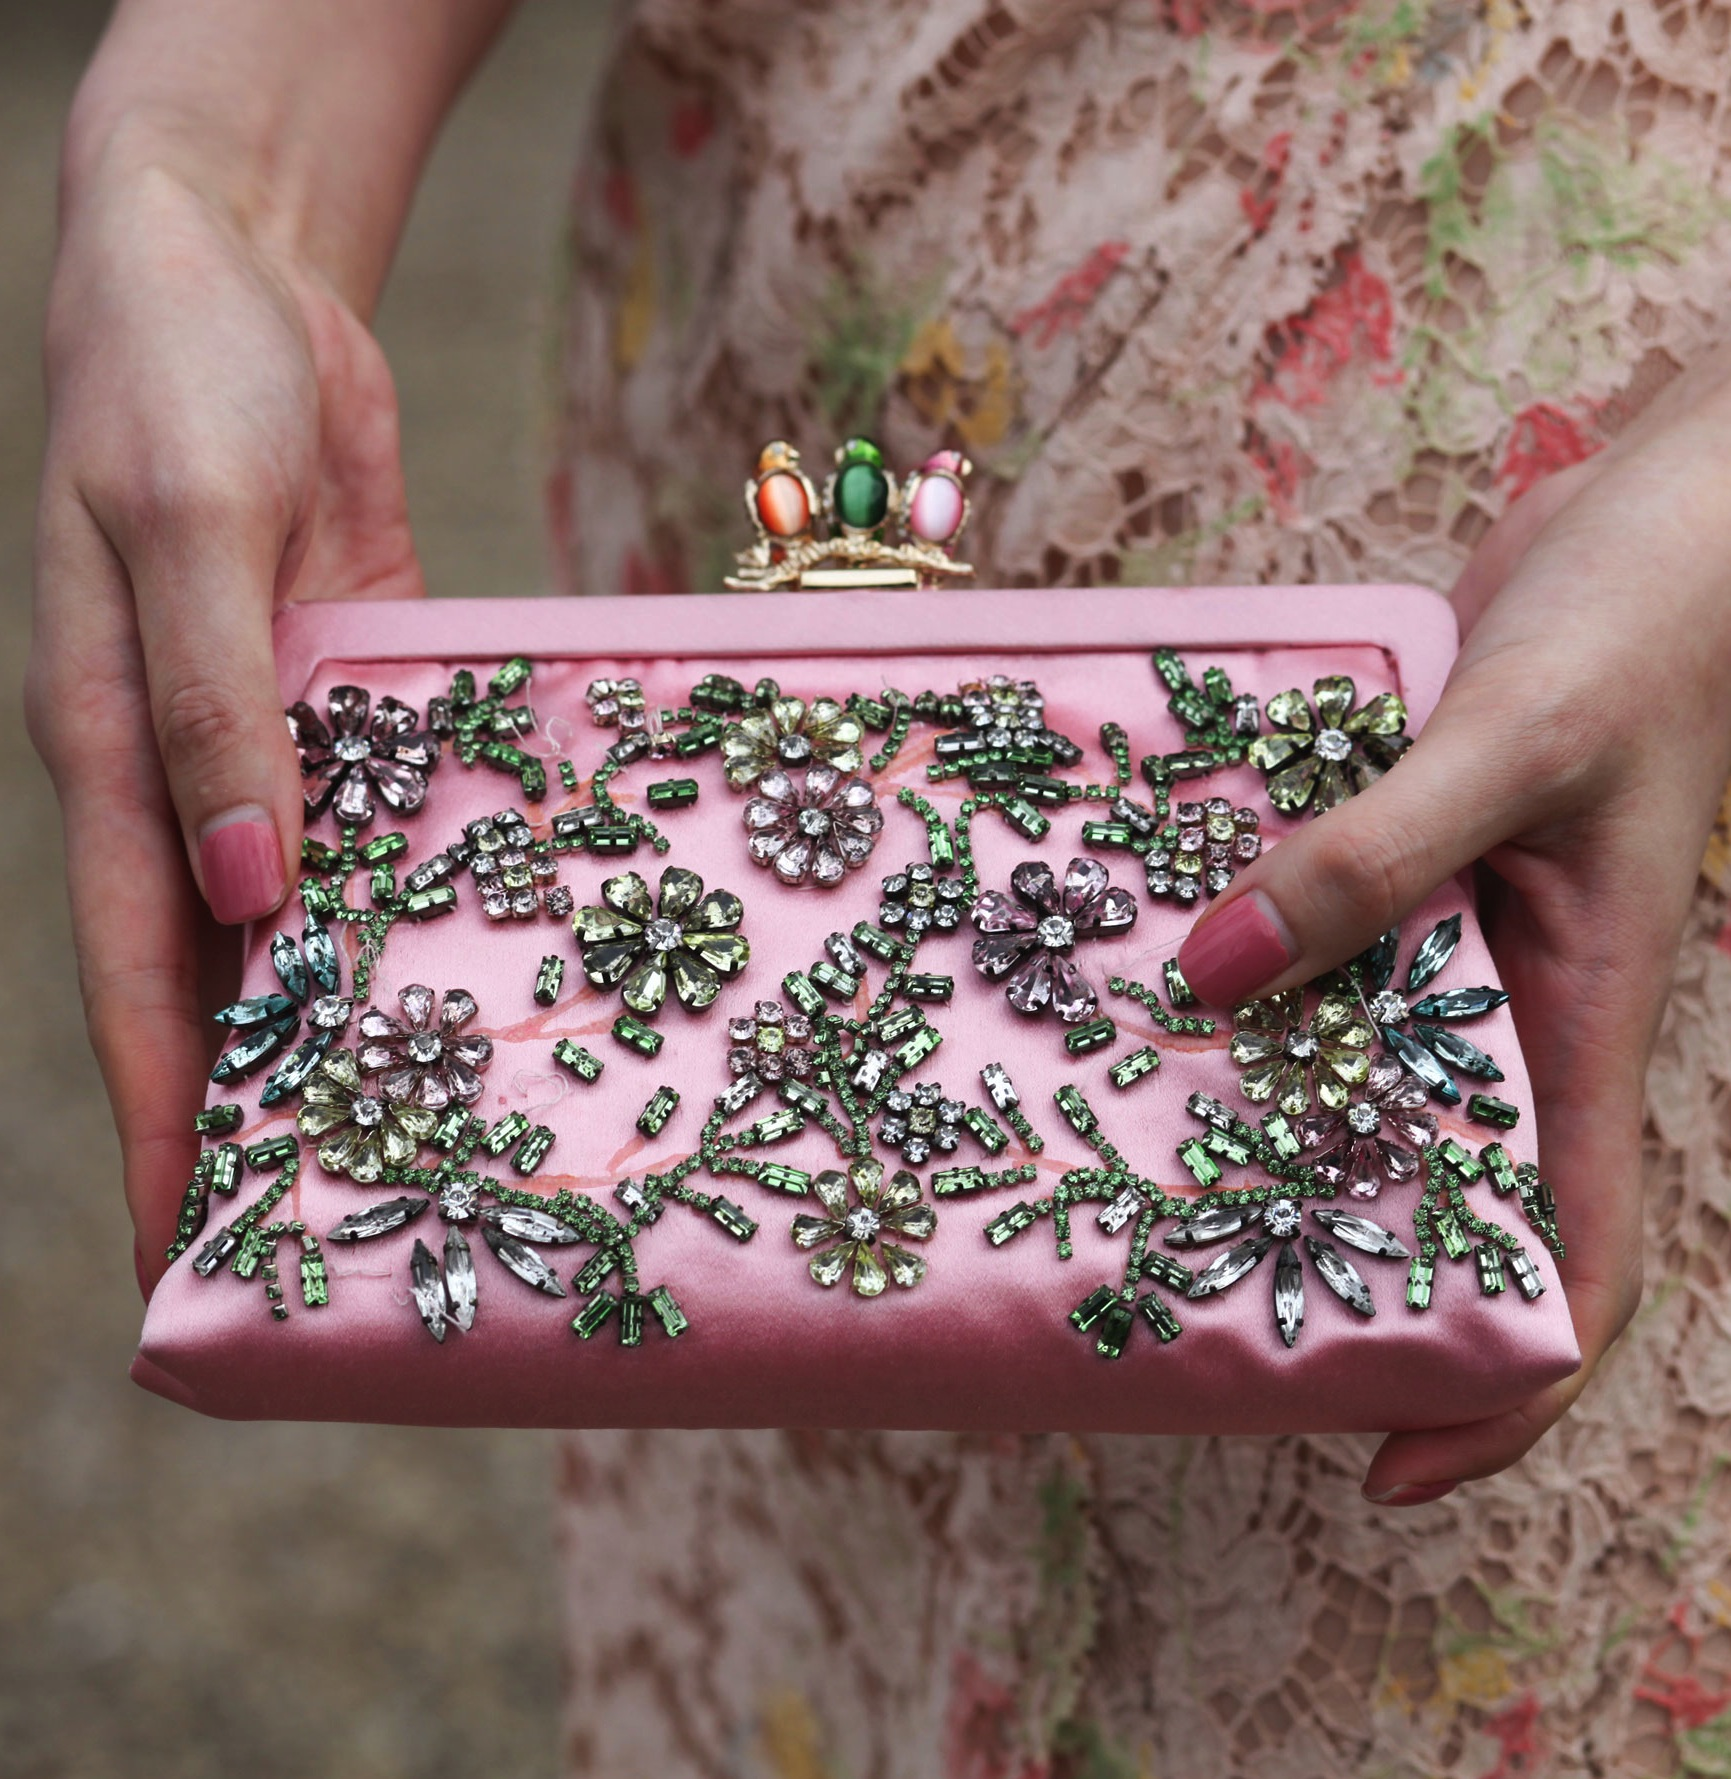 A Fashion Week attendee showed off her intricate, jewel-embellished satin clutch.